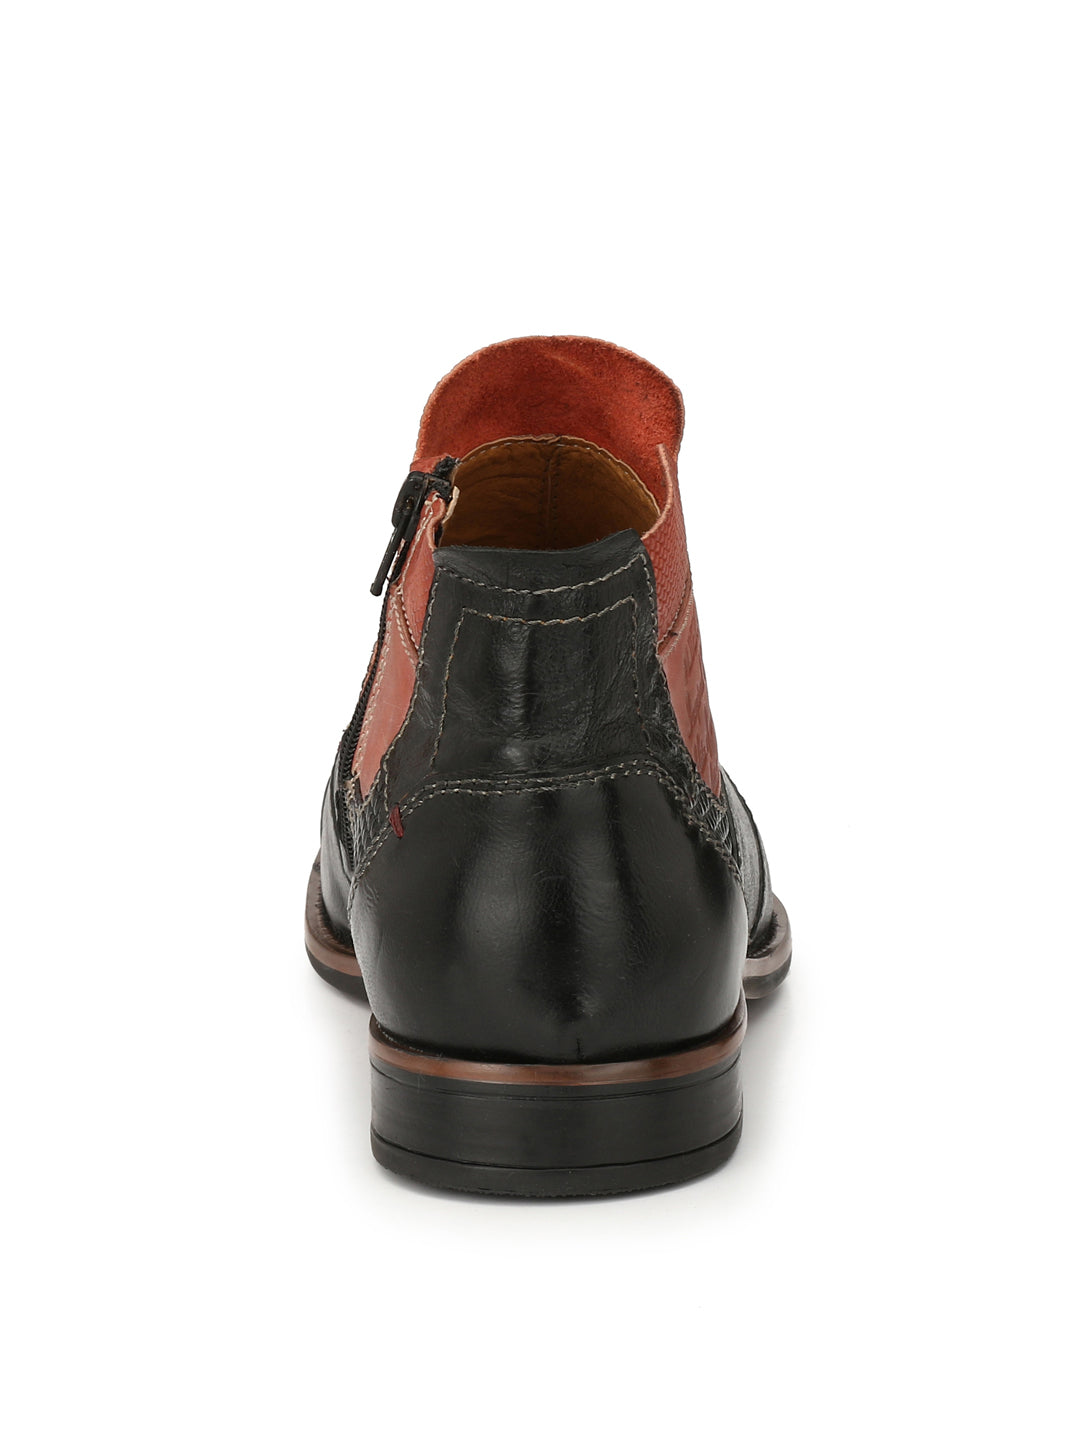 Alberto Torresi Orlando Black + Red Boot